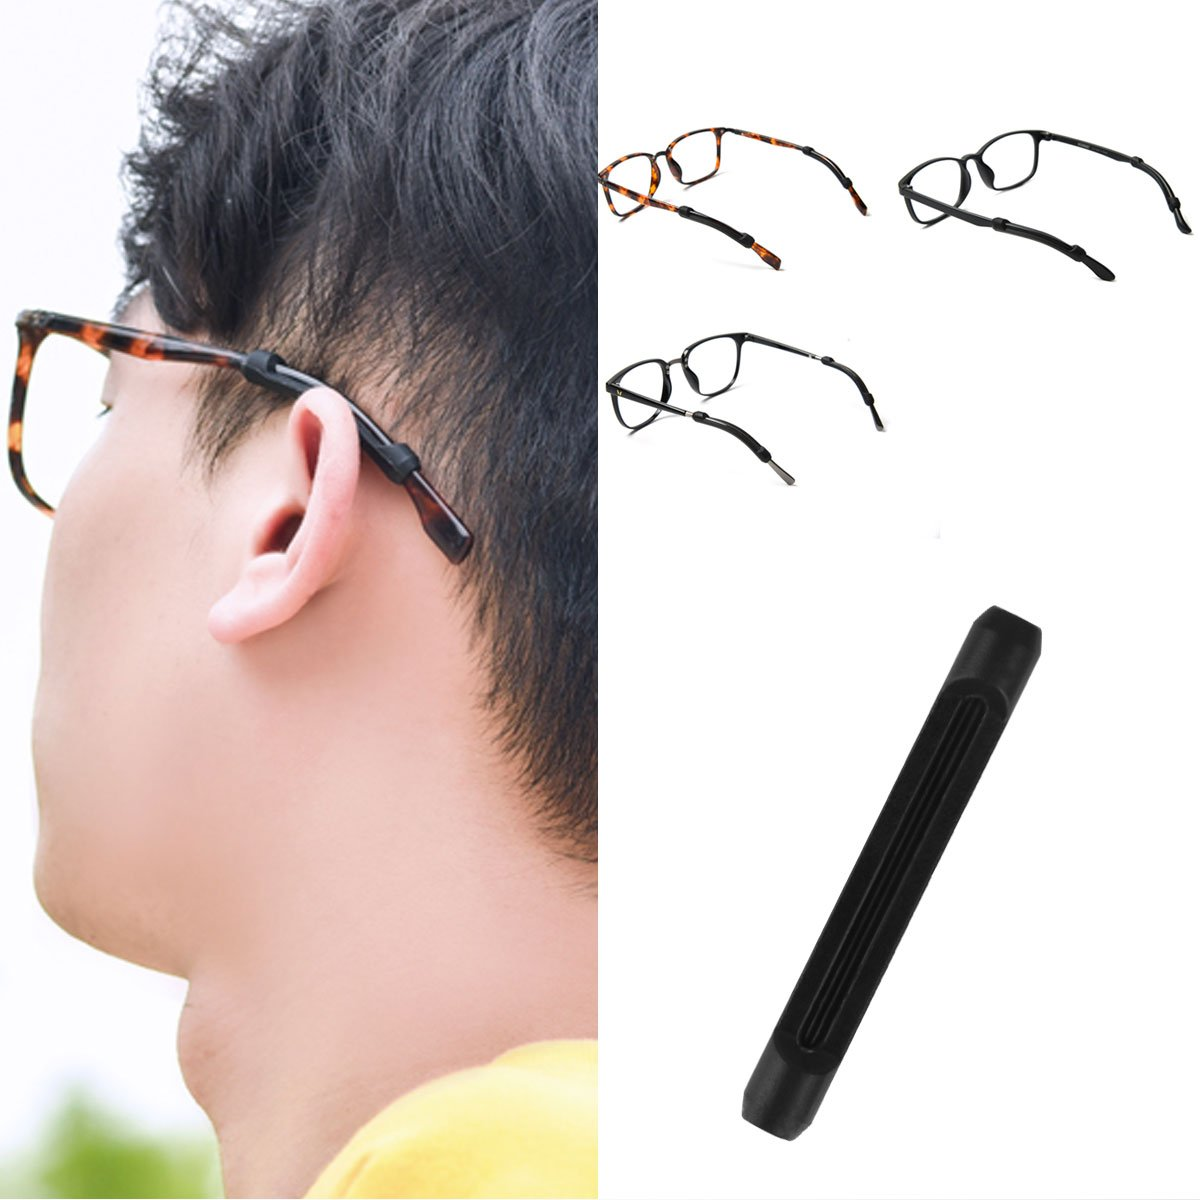 CHICTRY 5 Pairs Soft Silicone Eyeglasses Temple Tips Sleeve Retainer Anti-Slip Glasses Strap Holder Sunglasses Ear Hook Grips for Outdoor Sport Black One_Size